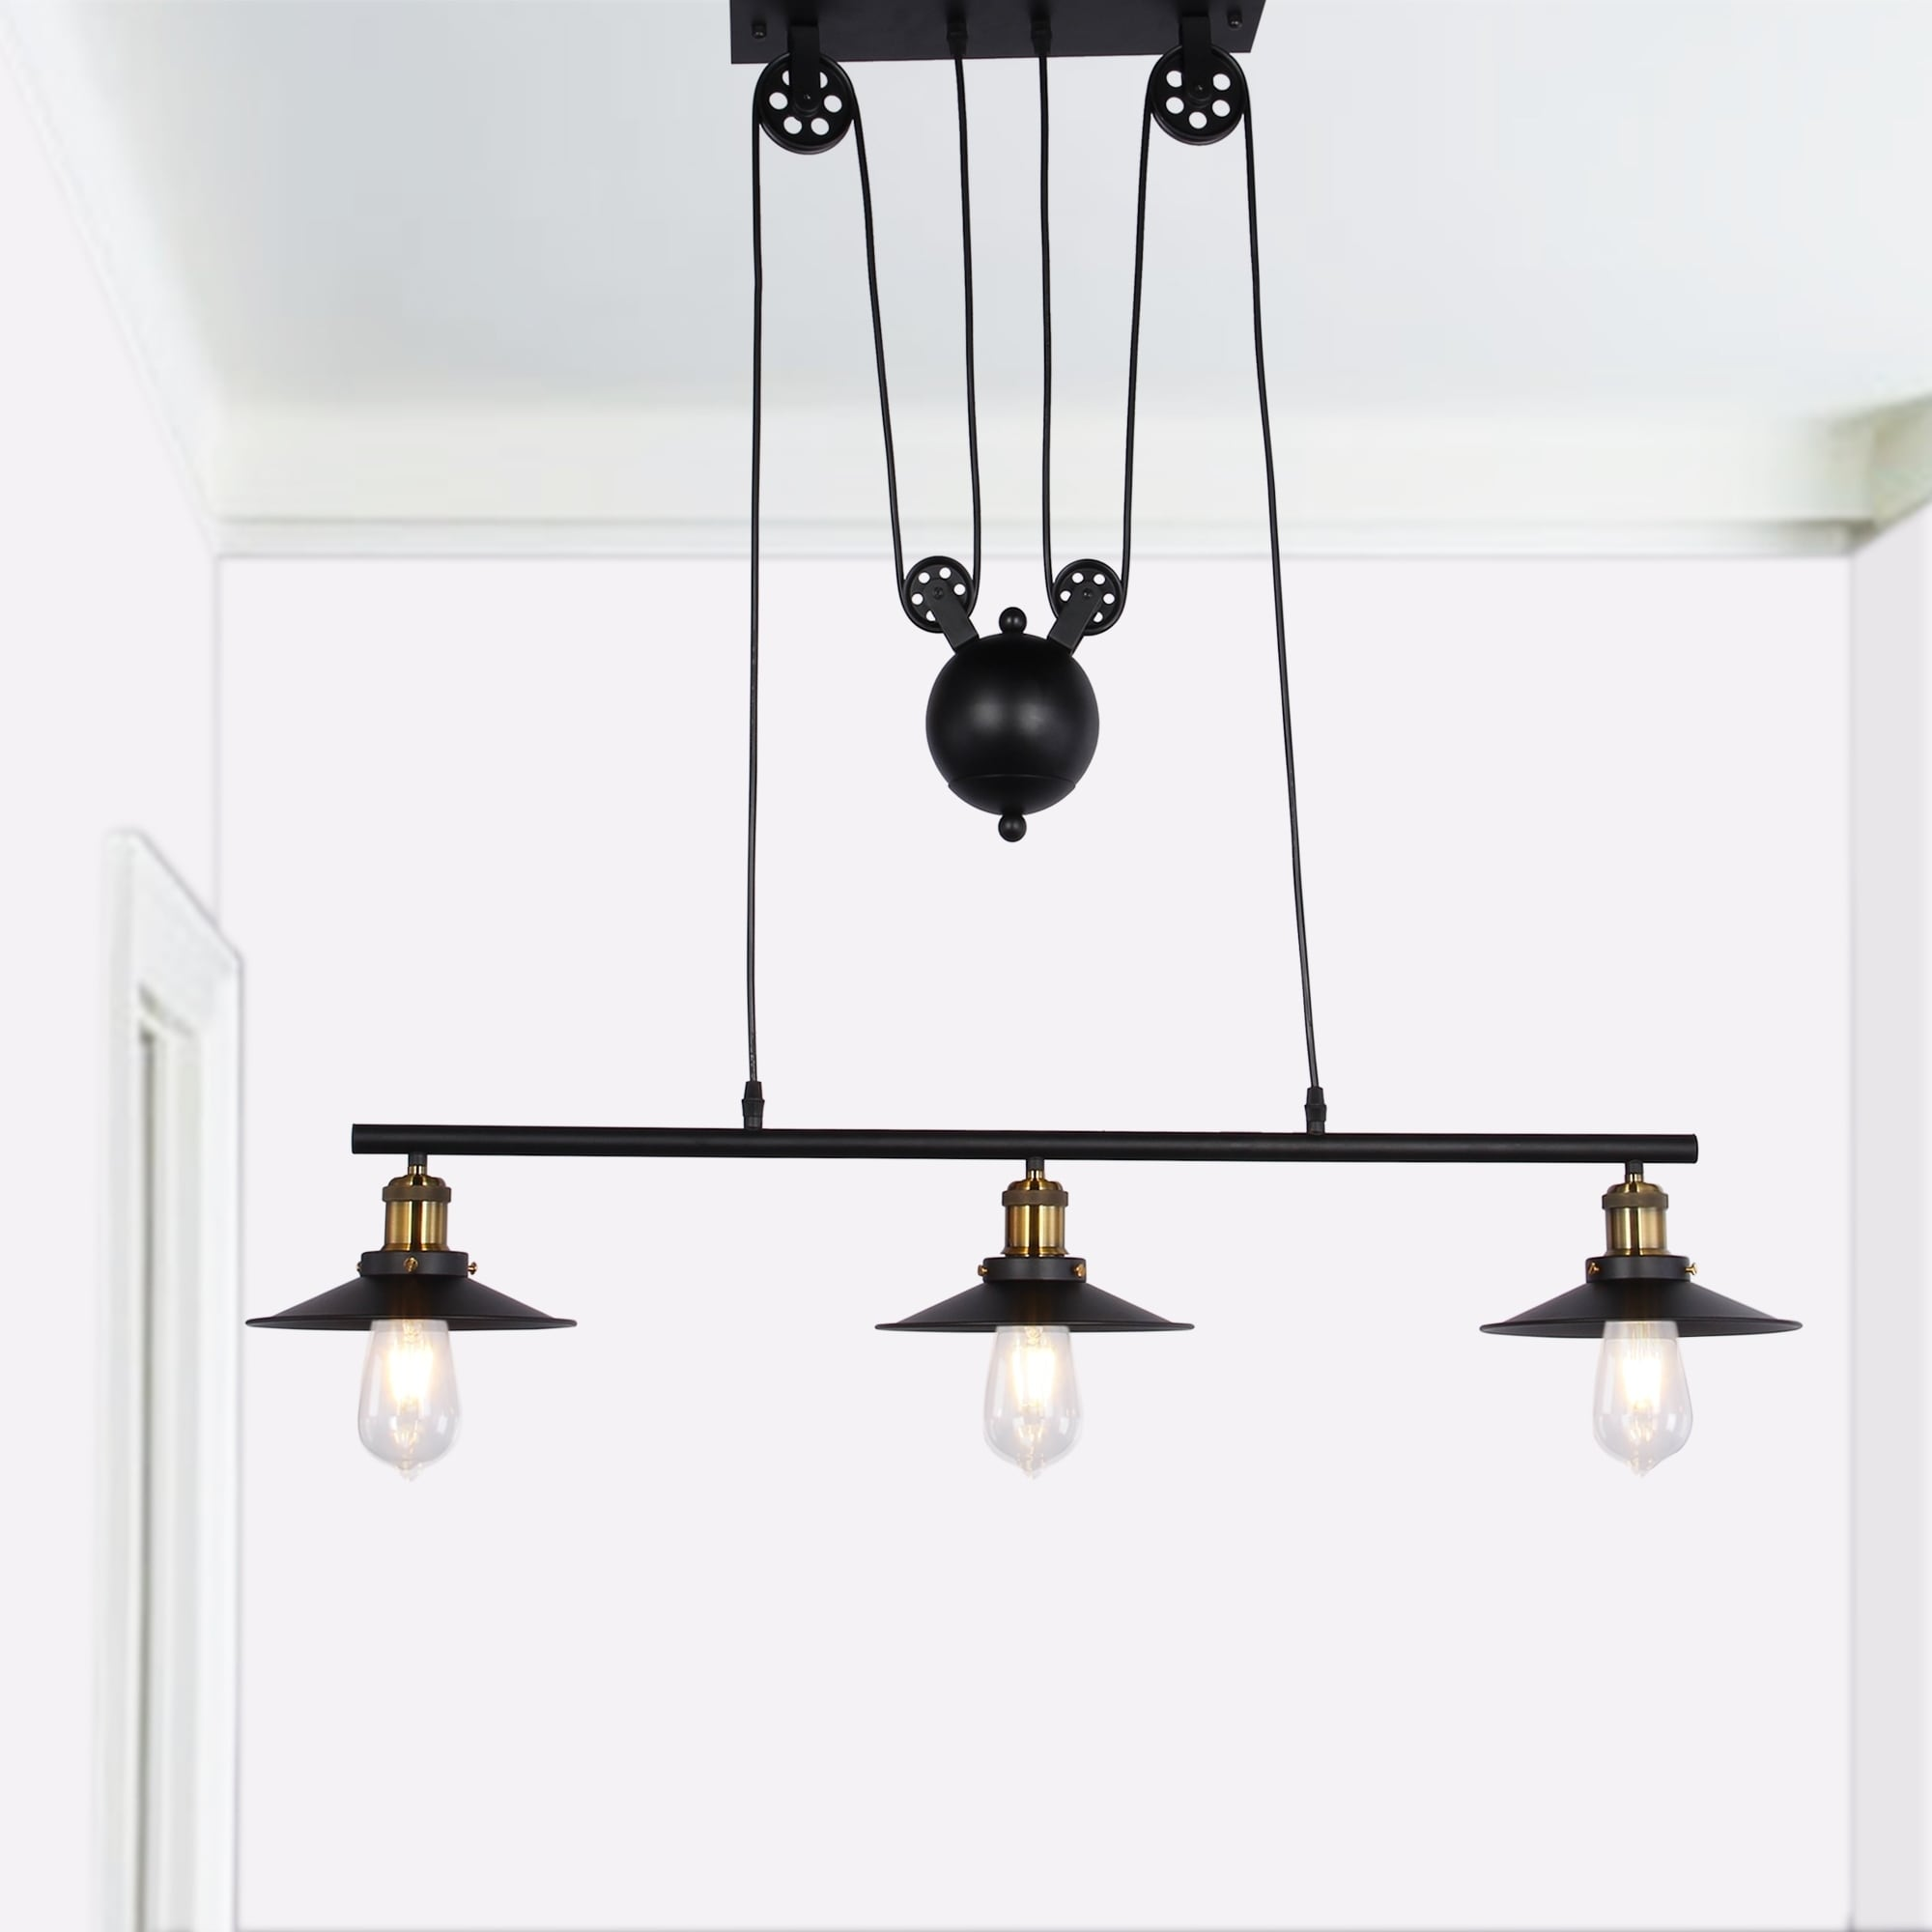 Shop darleen 3 light black 42 inch chandelier includes edison bulbs shop darleen 3 light black 42 inch chandelier includes edison bulbs free shipping today overstock 19792224 aloadofball Images